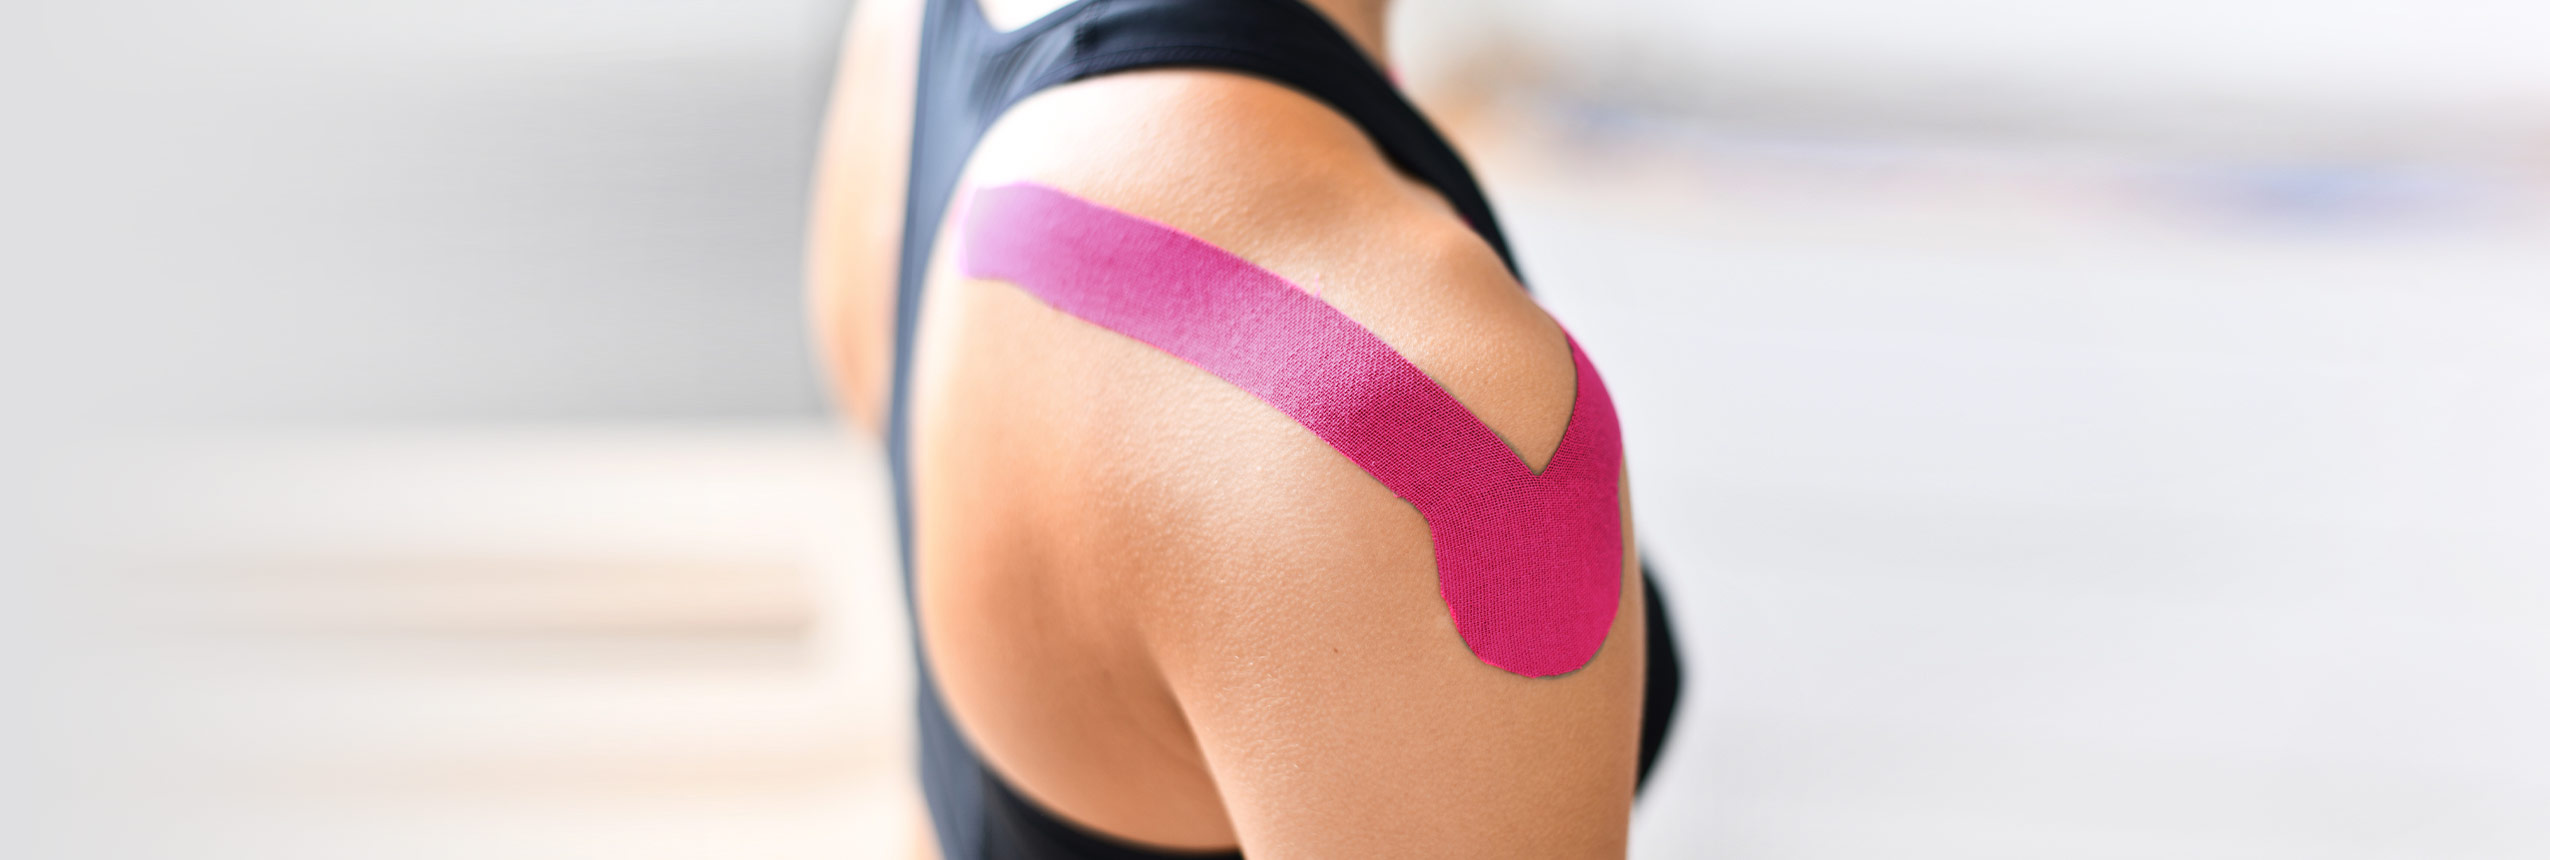 kinesio tapes muenchen orthopaede - Kinesio Tapes